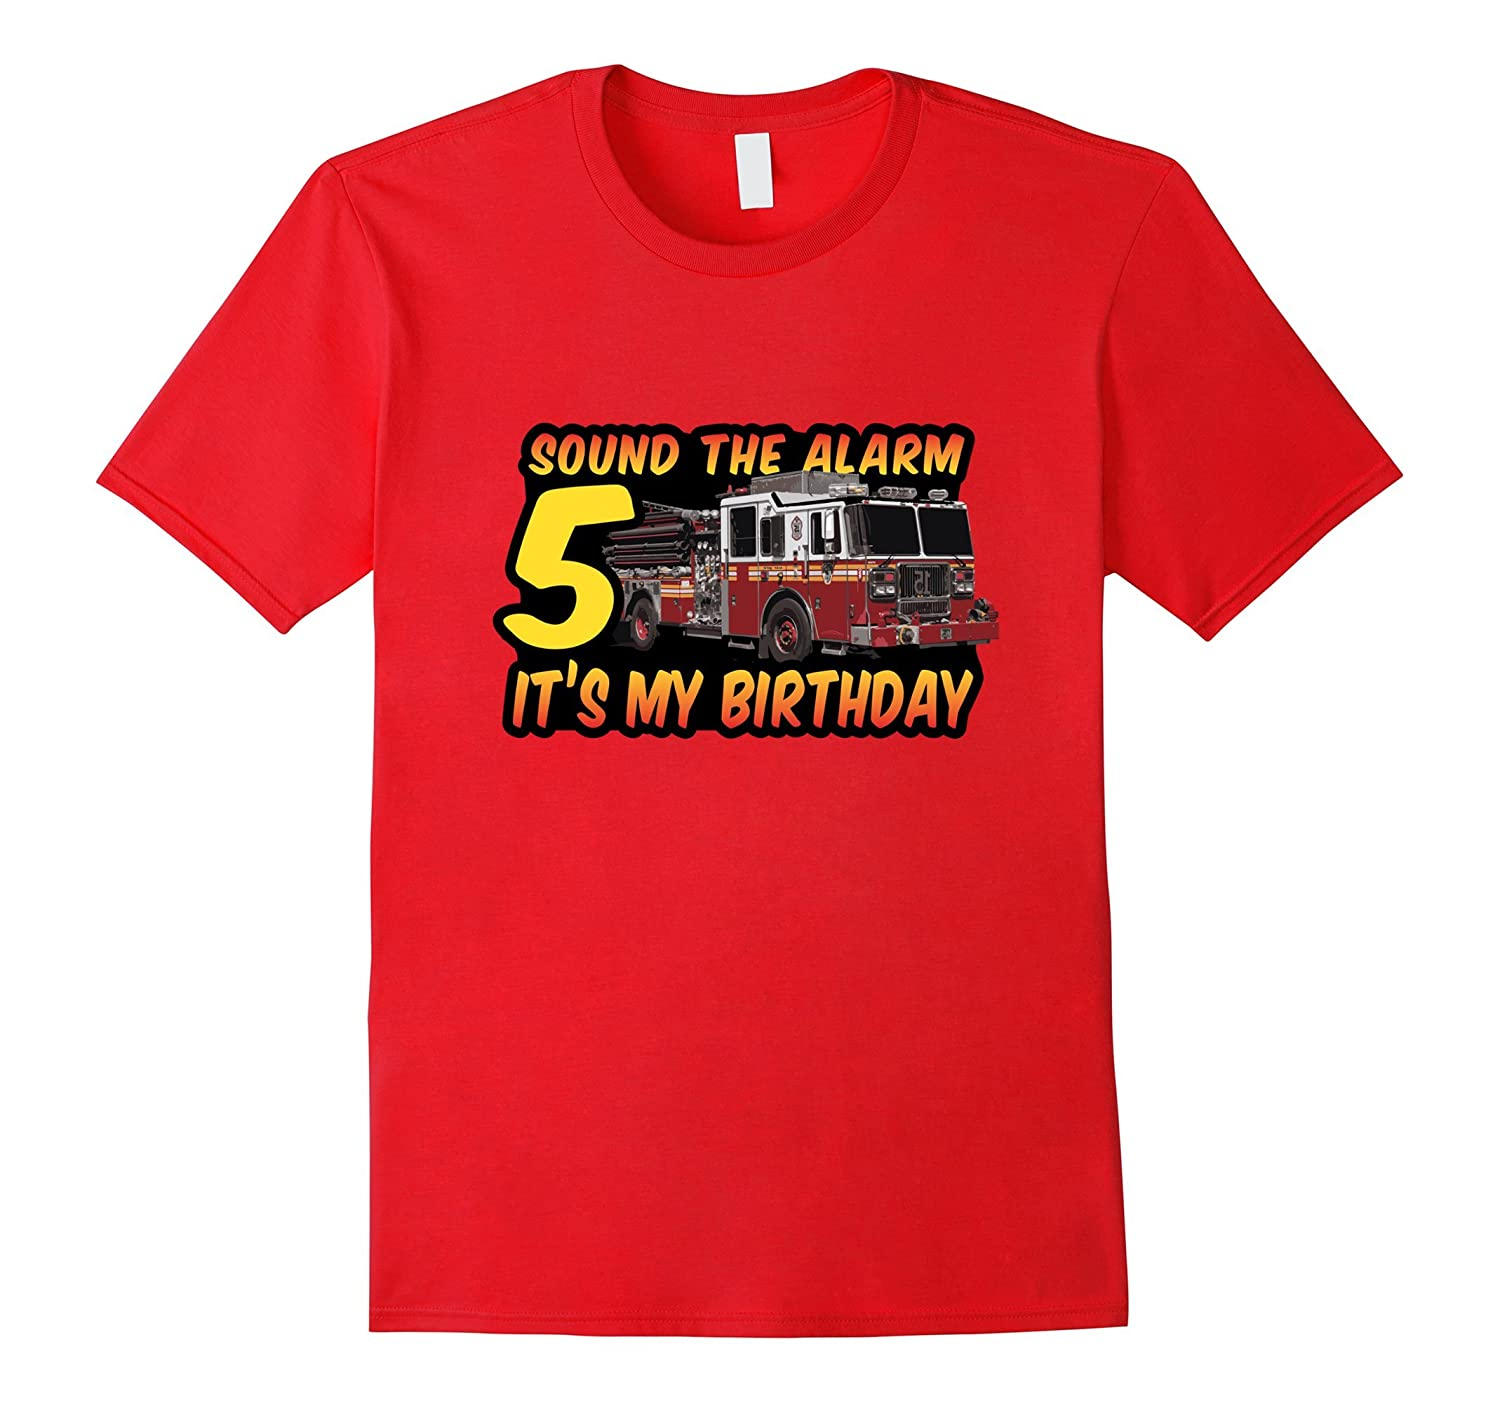 5th BIRTHDAY FIREMAN SOUND THE ALARM tshirt for big kids boy-TH